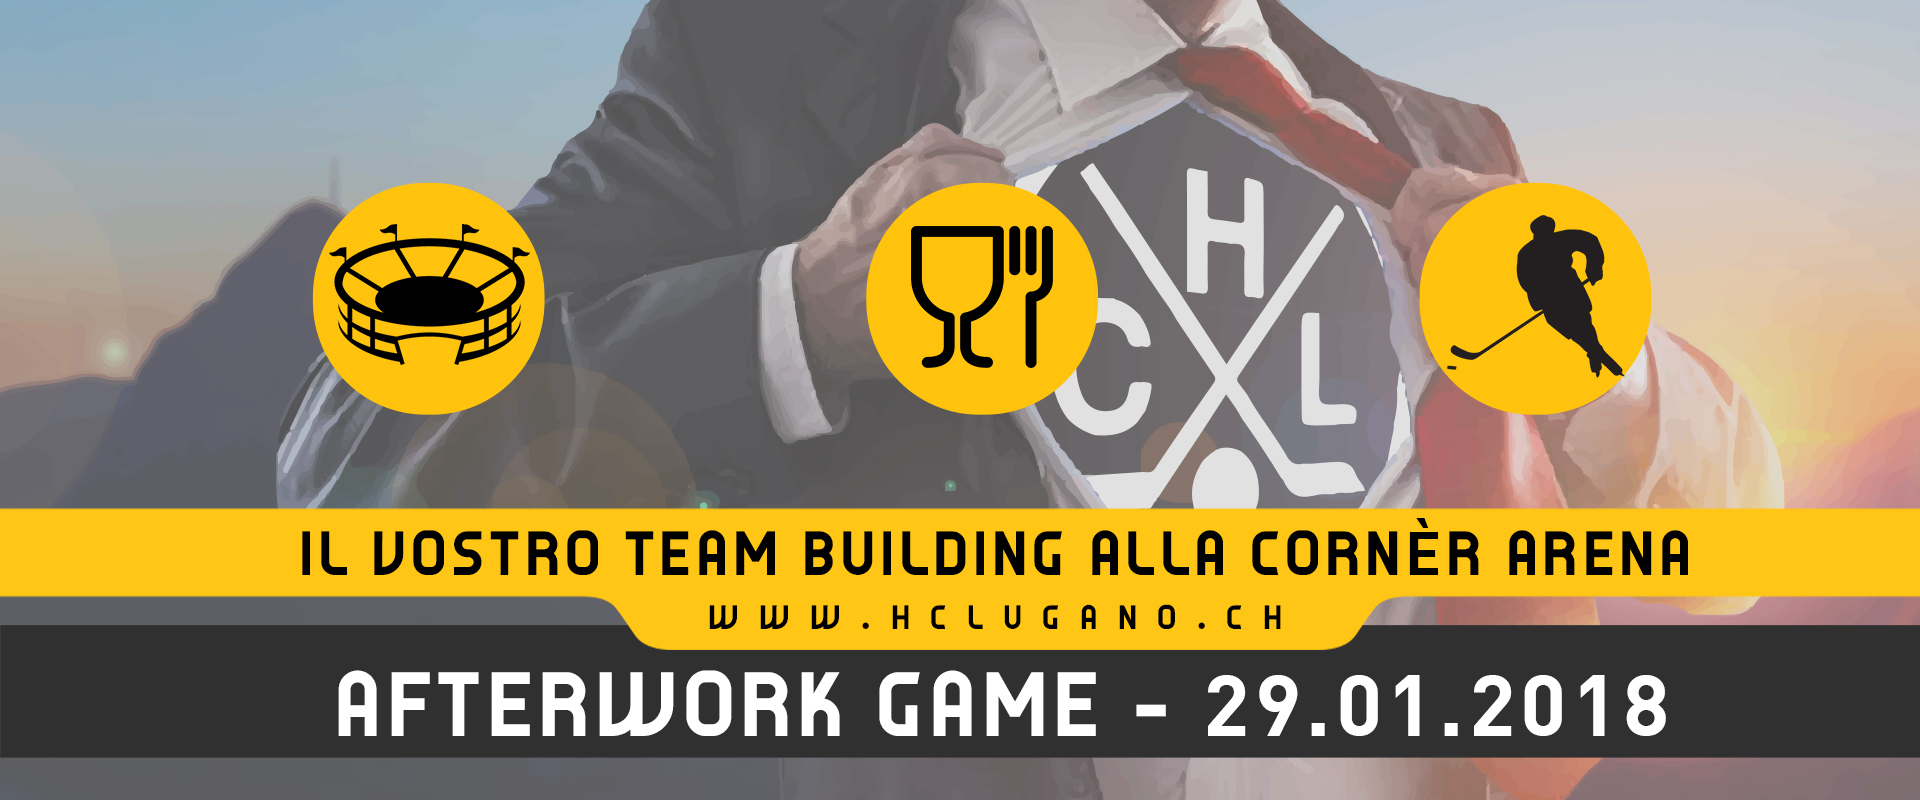 Afterwork Game - 29.01.2019 News sito